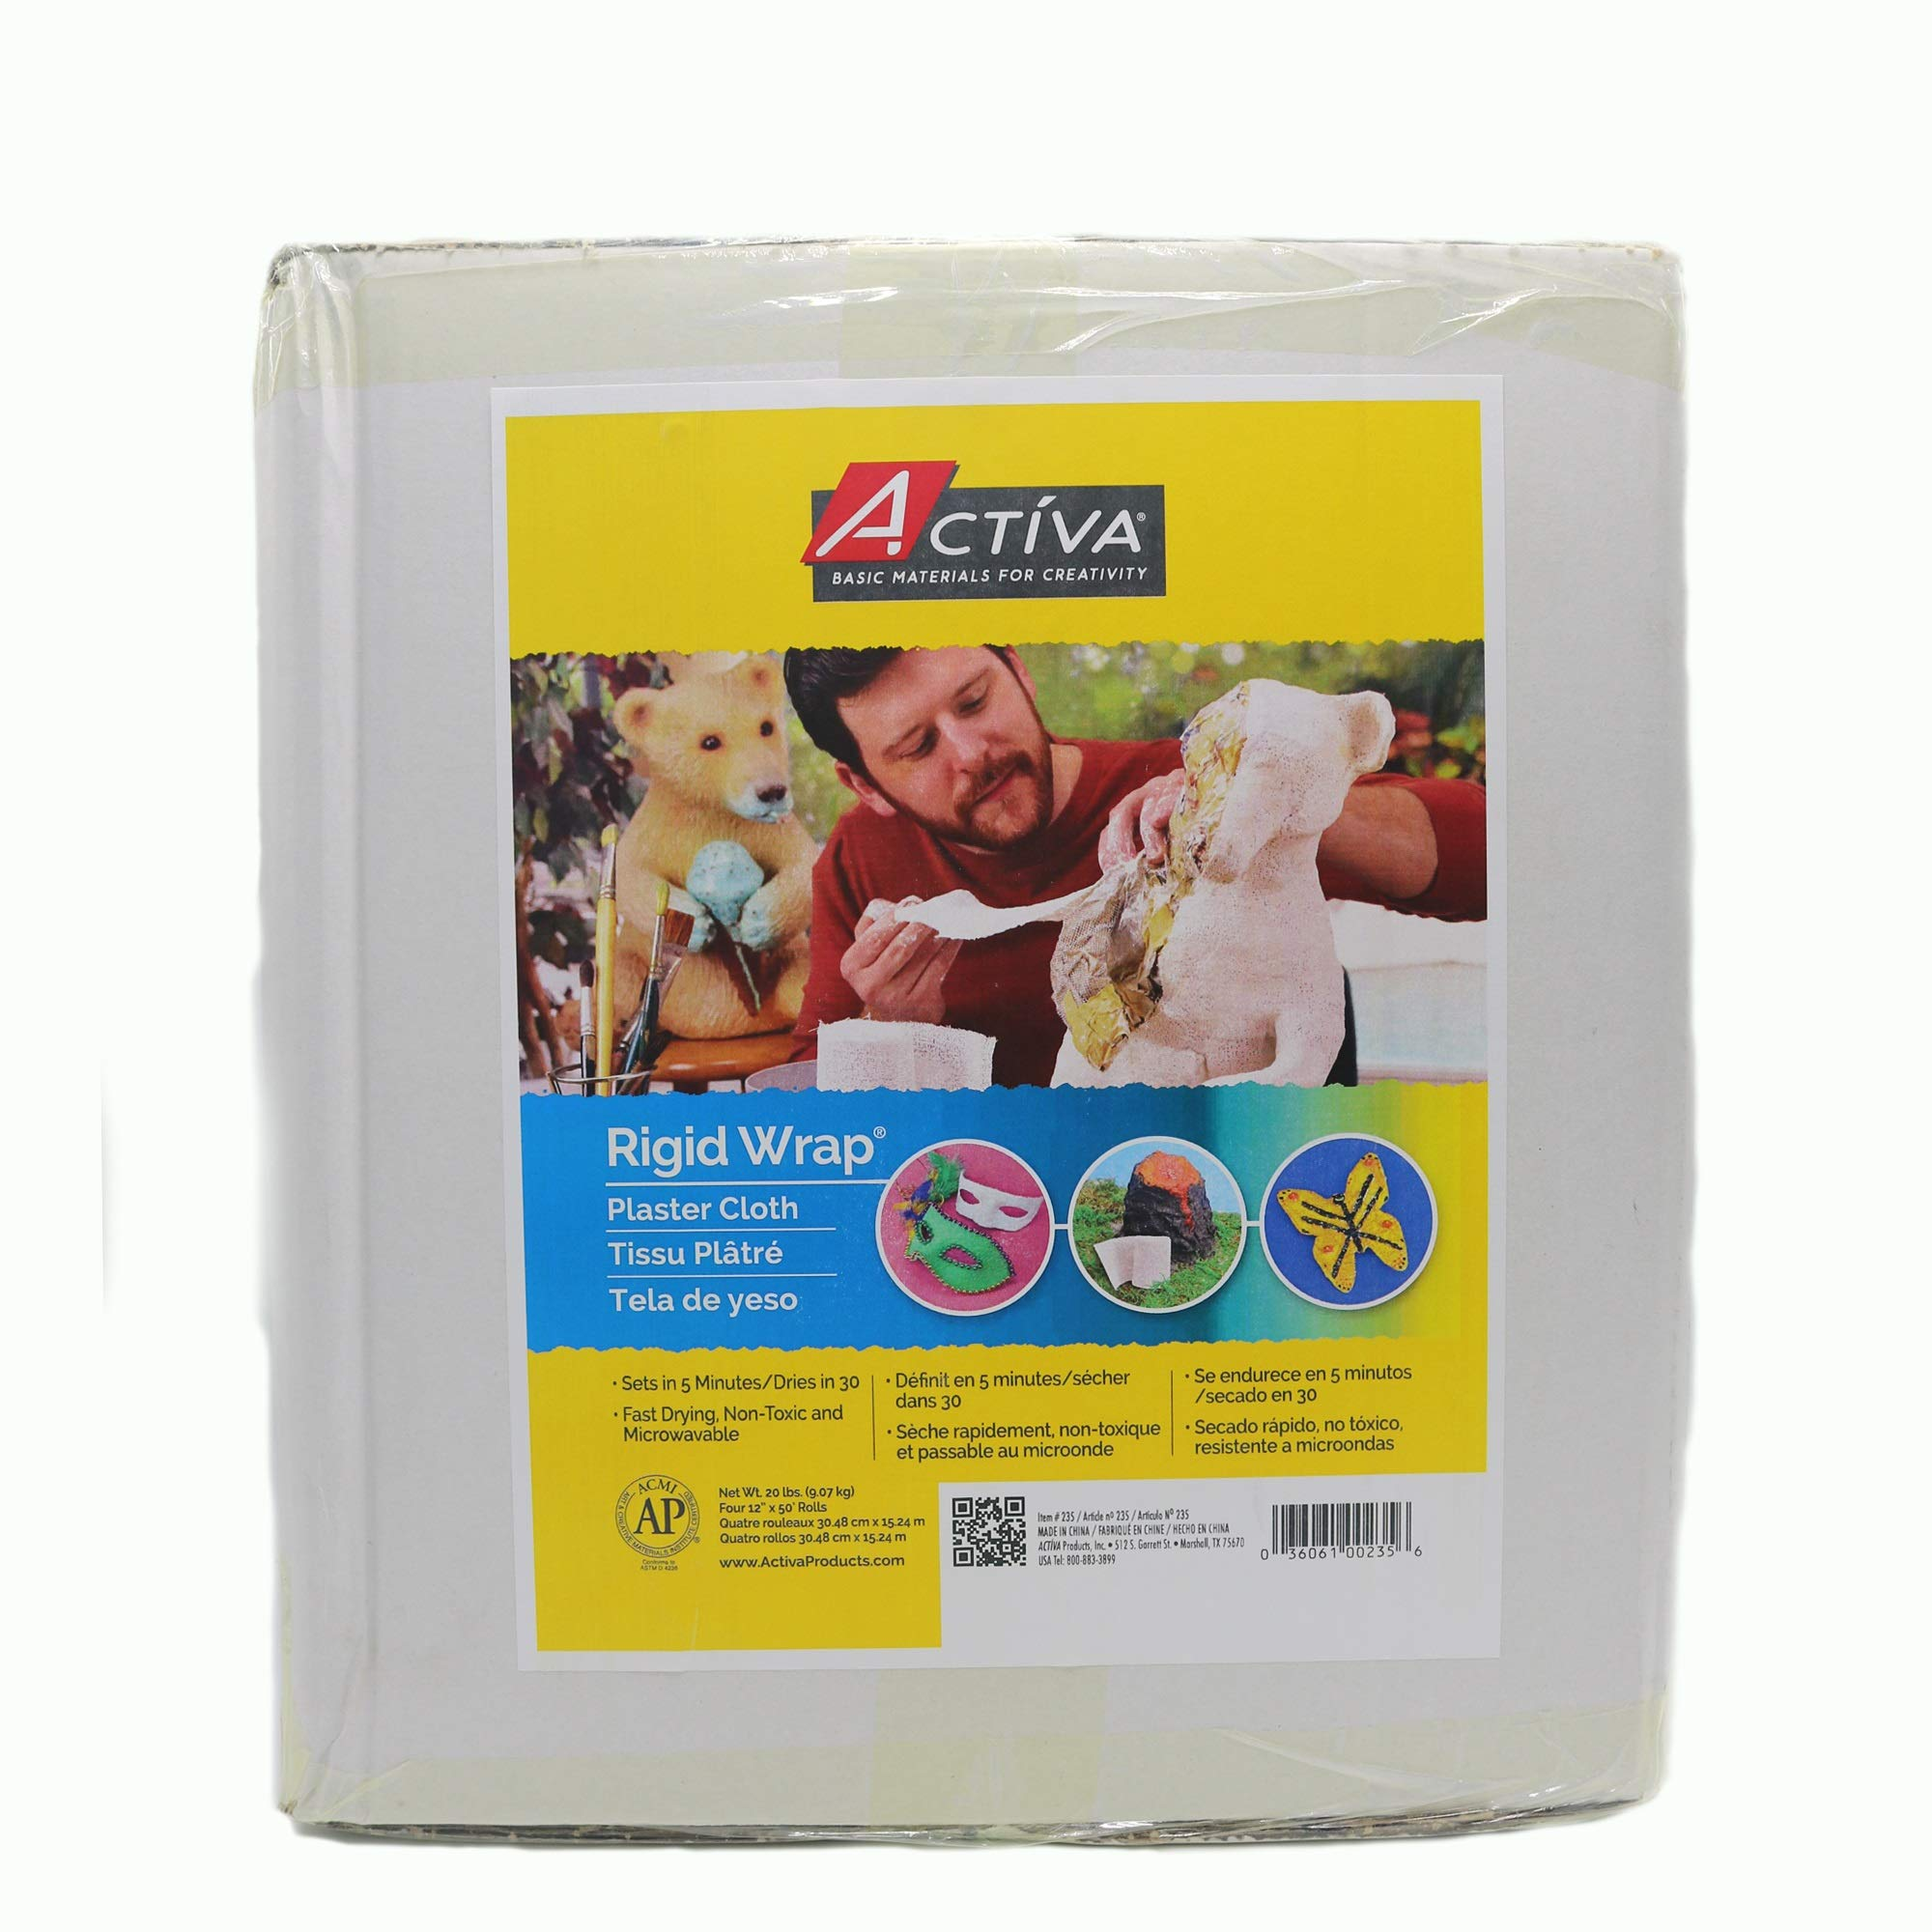 Activa Products Rigid Wrap Plaster Cloth for Arts and Crafts, 20-Pound by Activa Products (Image #1)